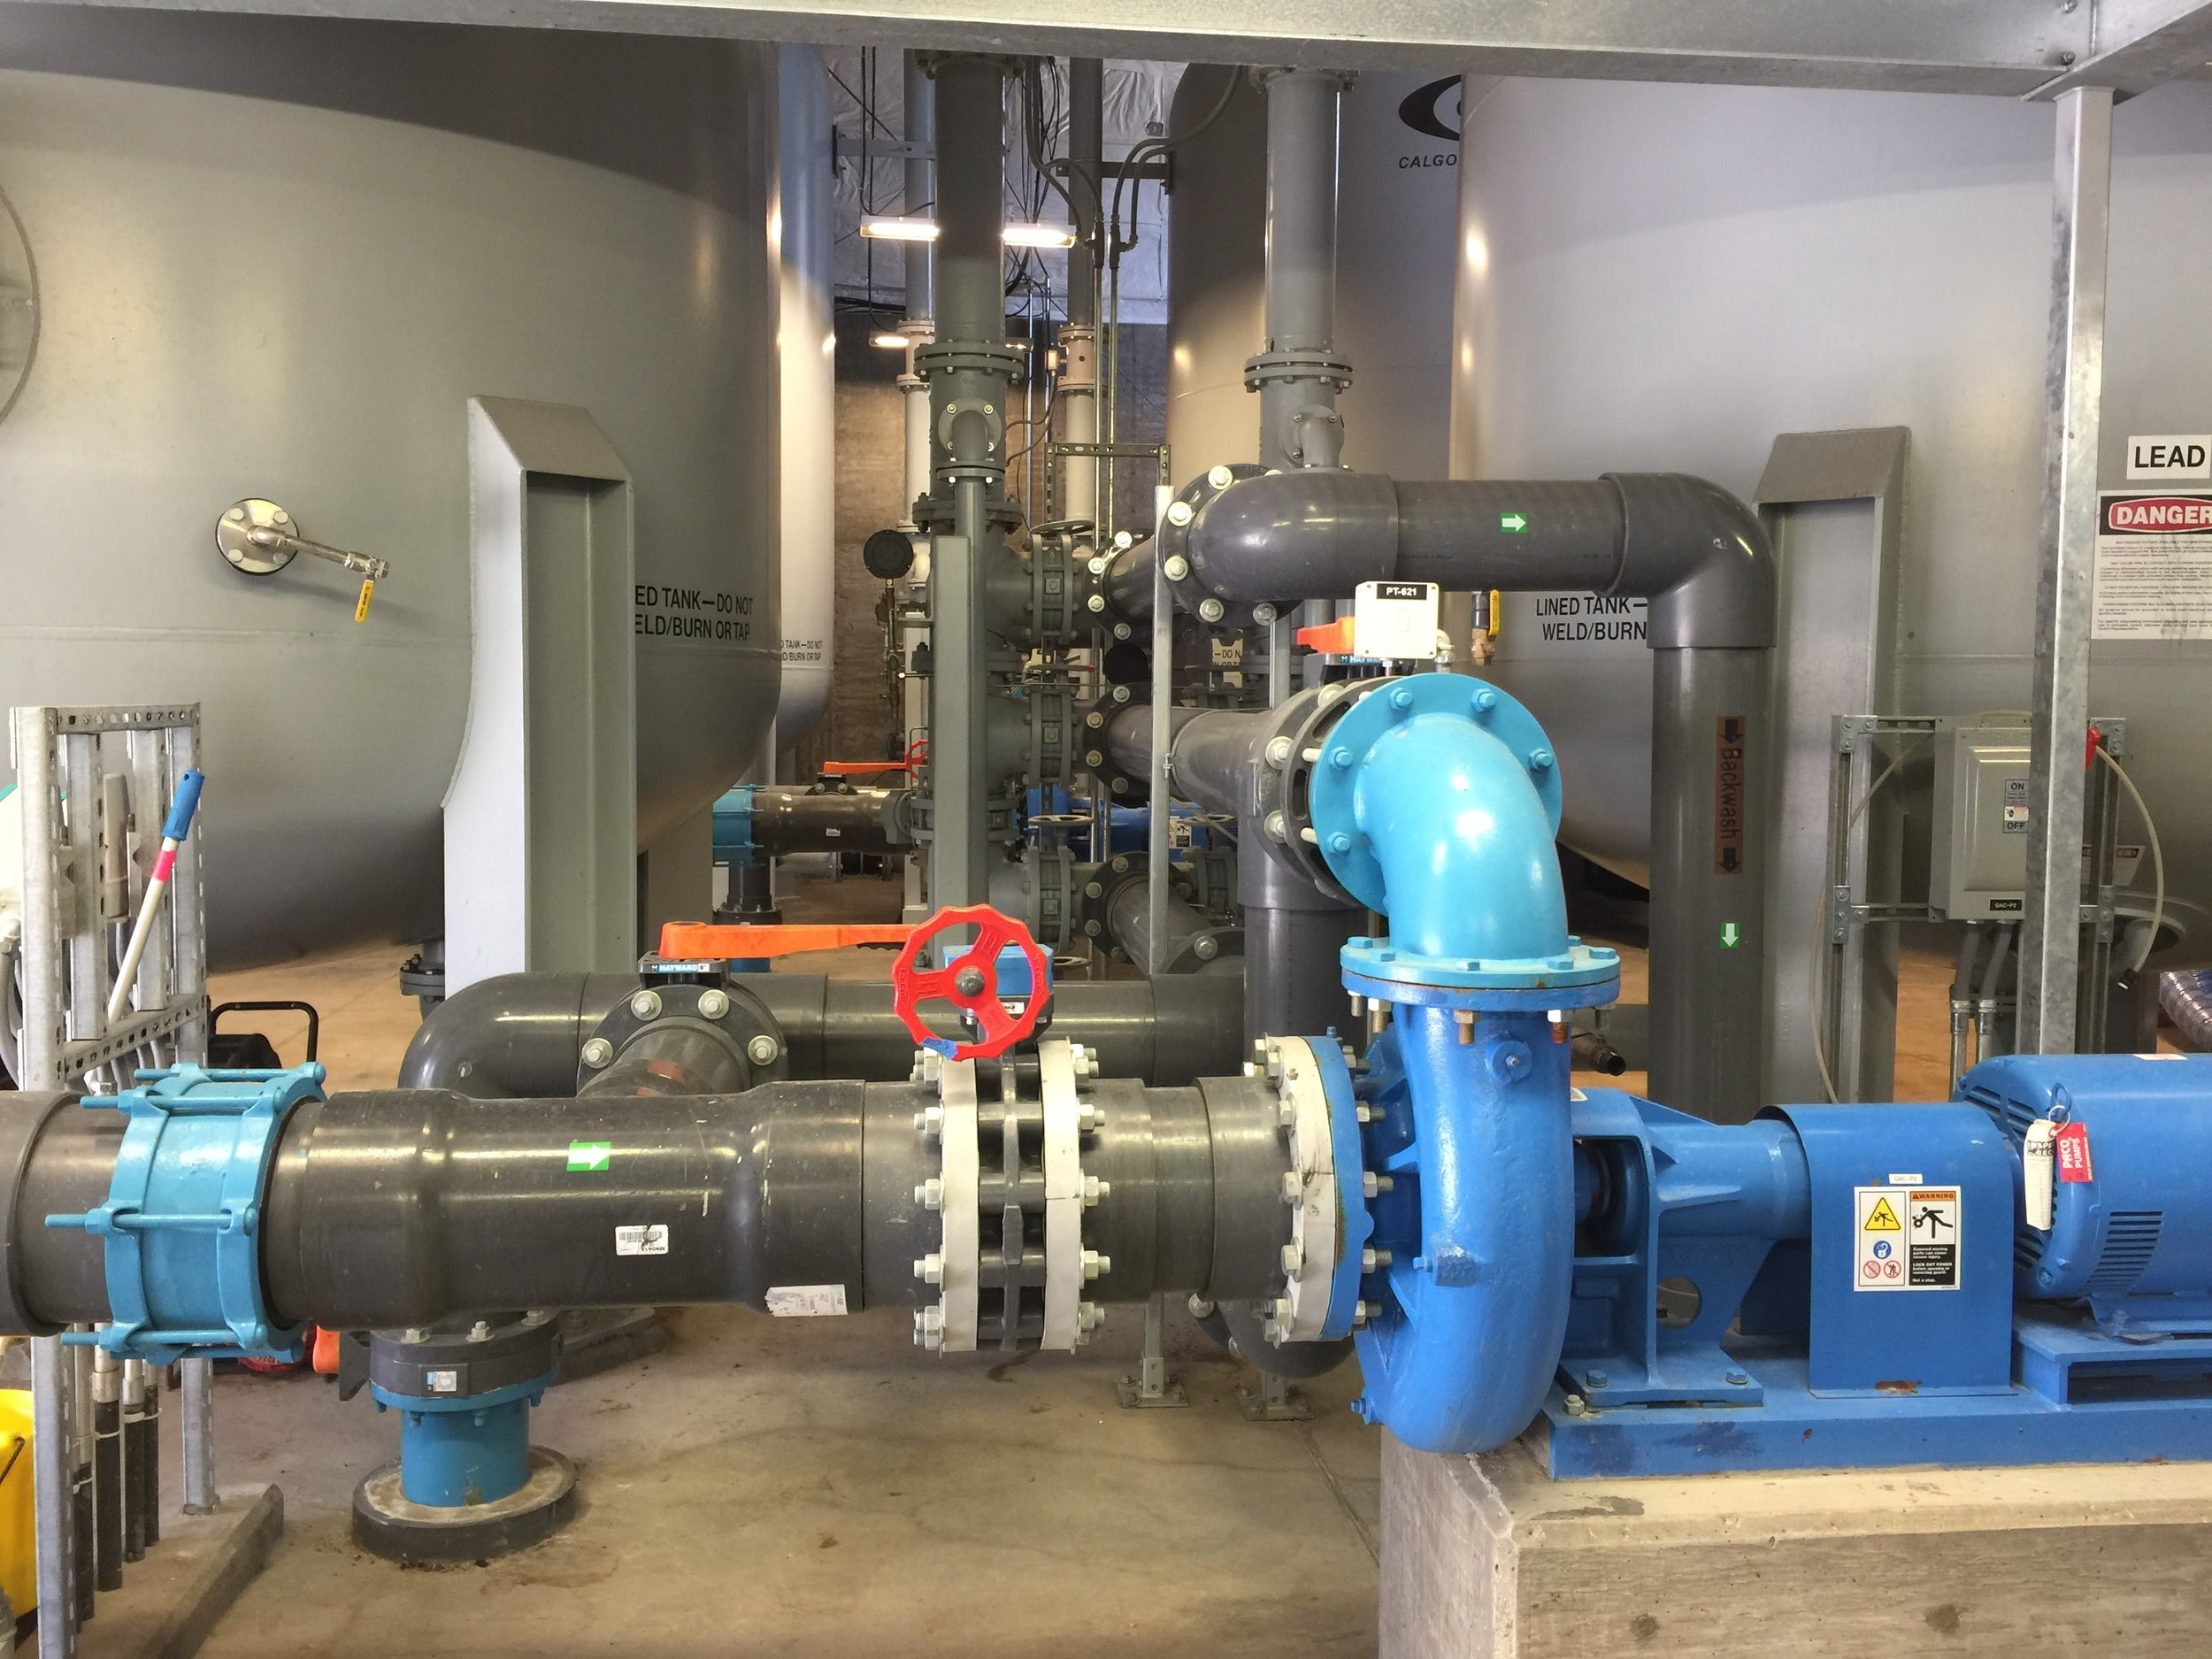 14. Pumps to deliver treated water to post-treatment system